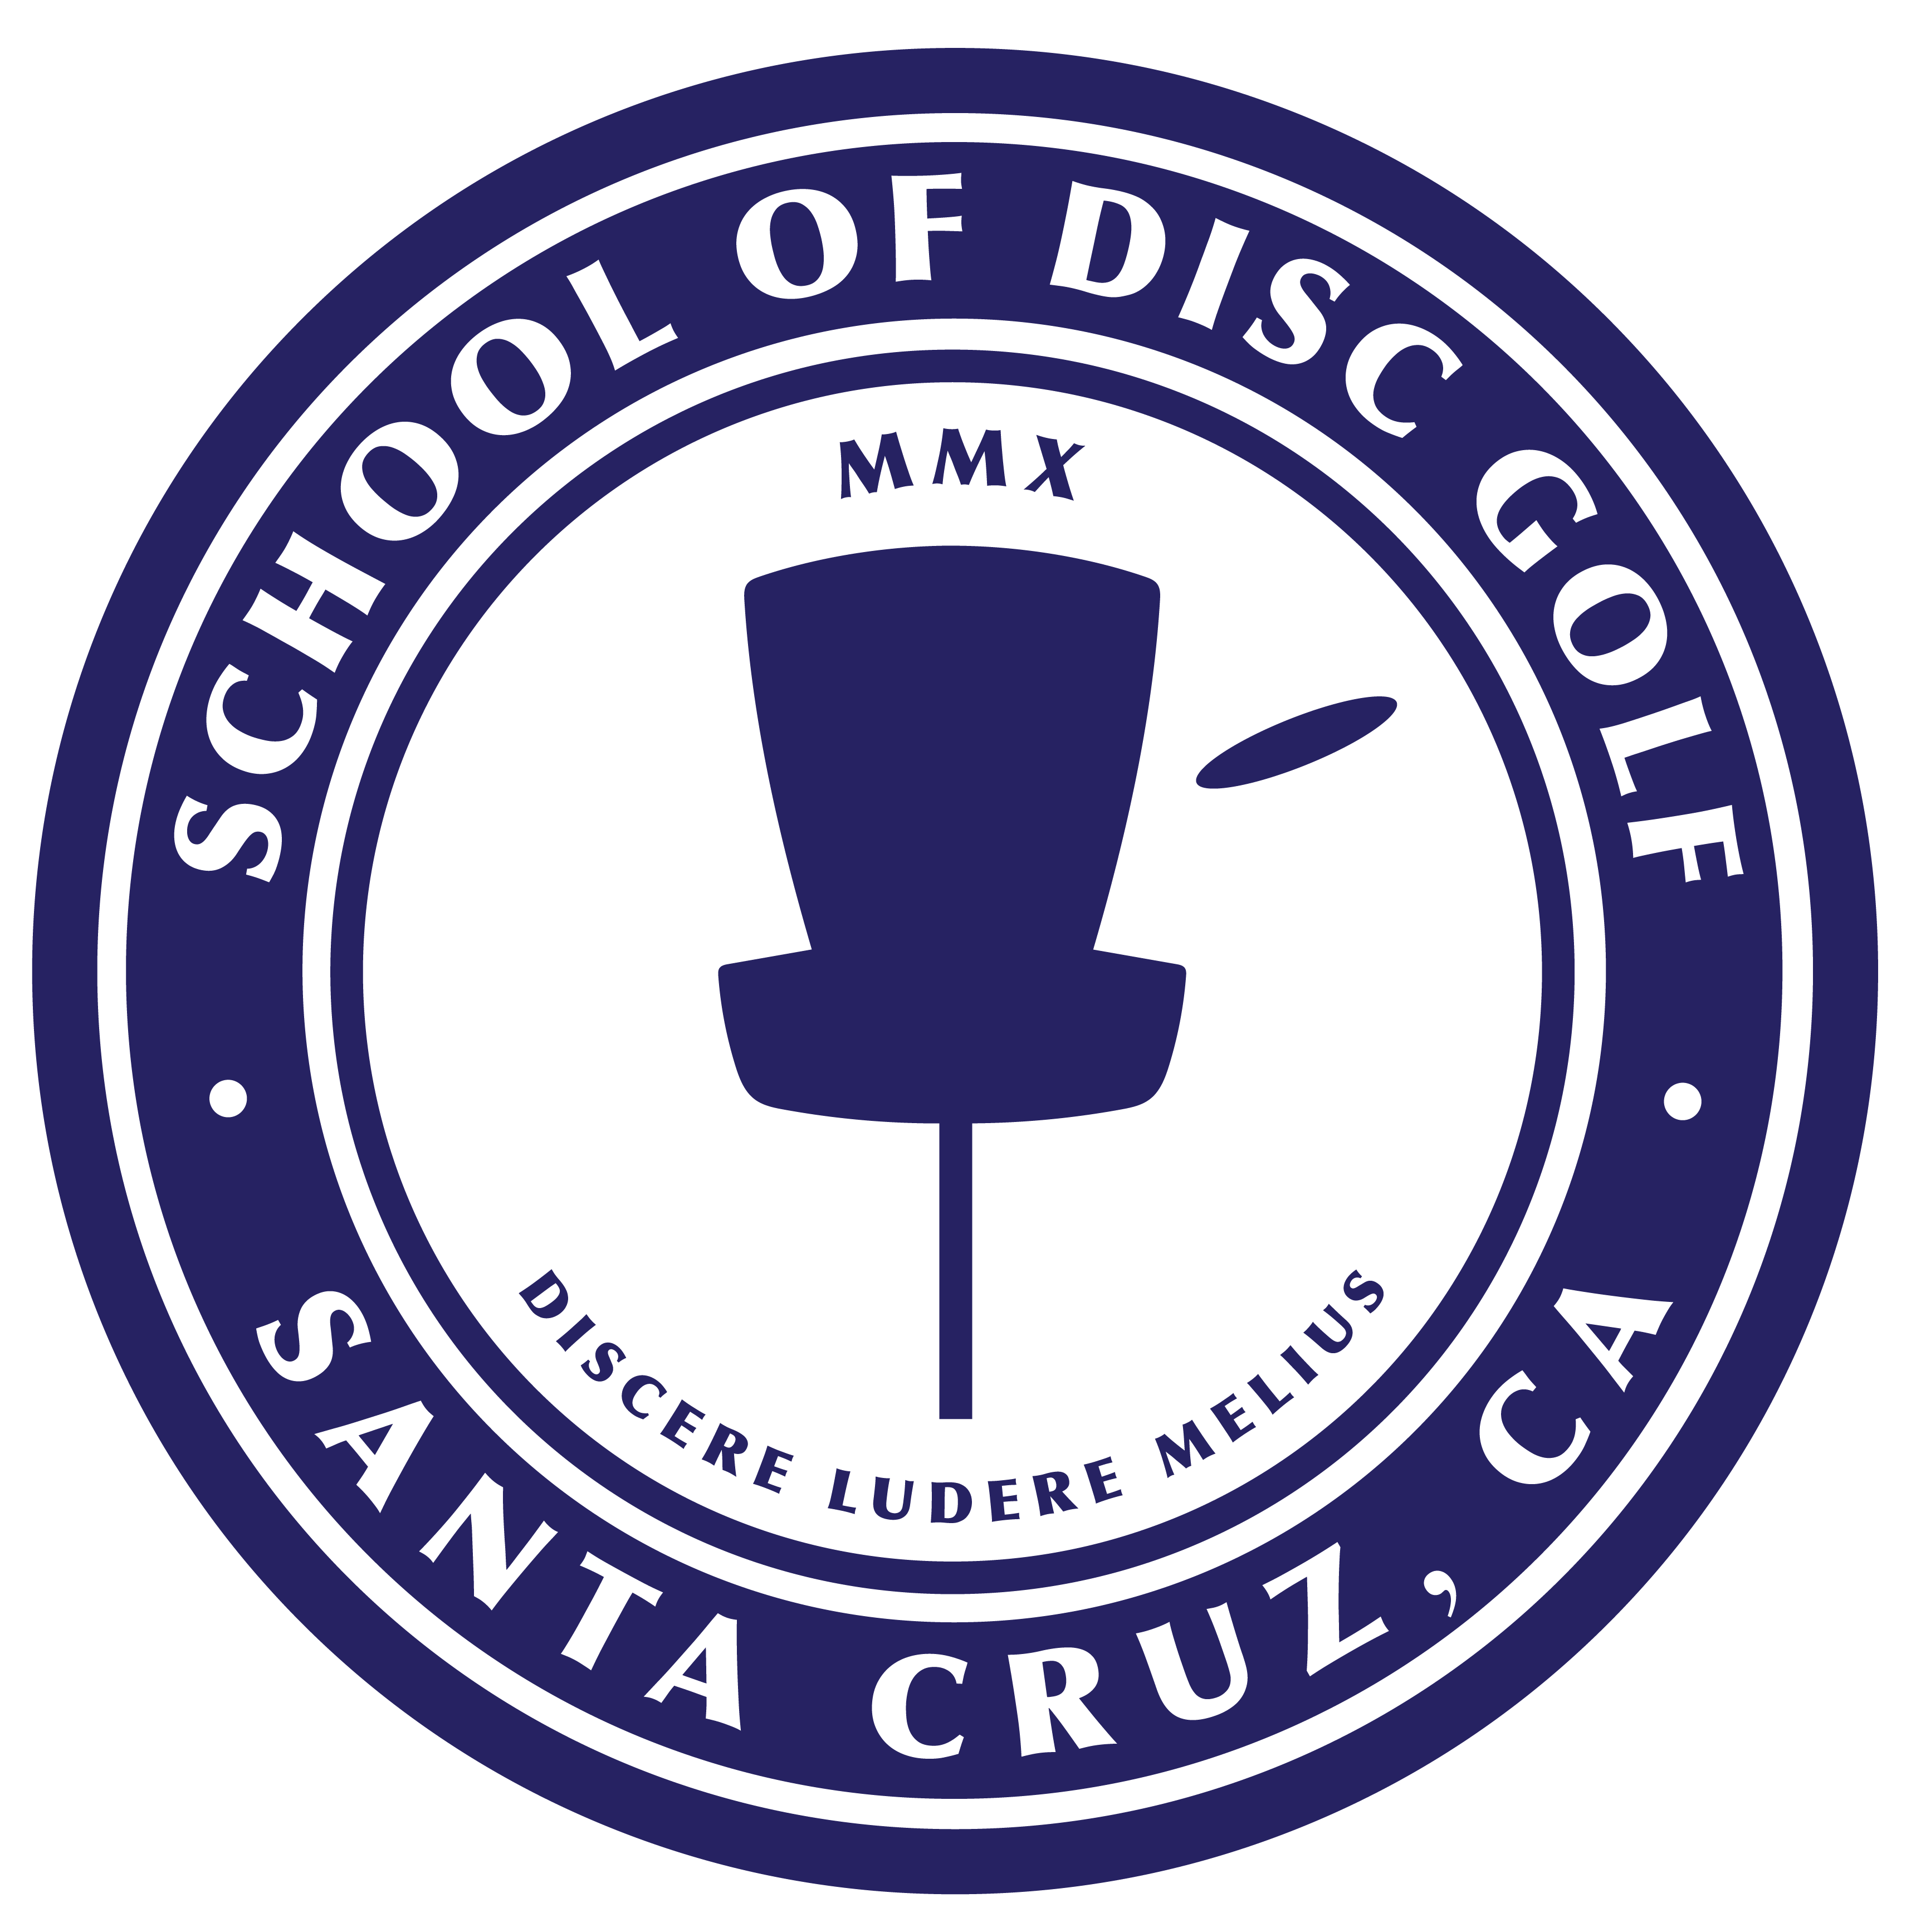 school of disc golf